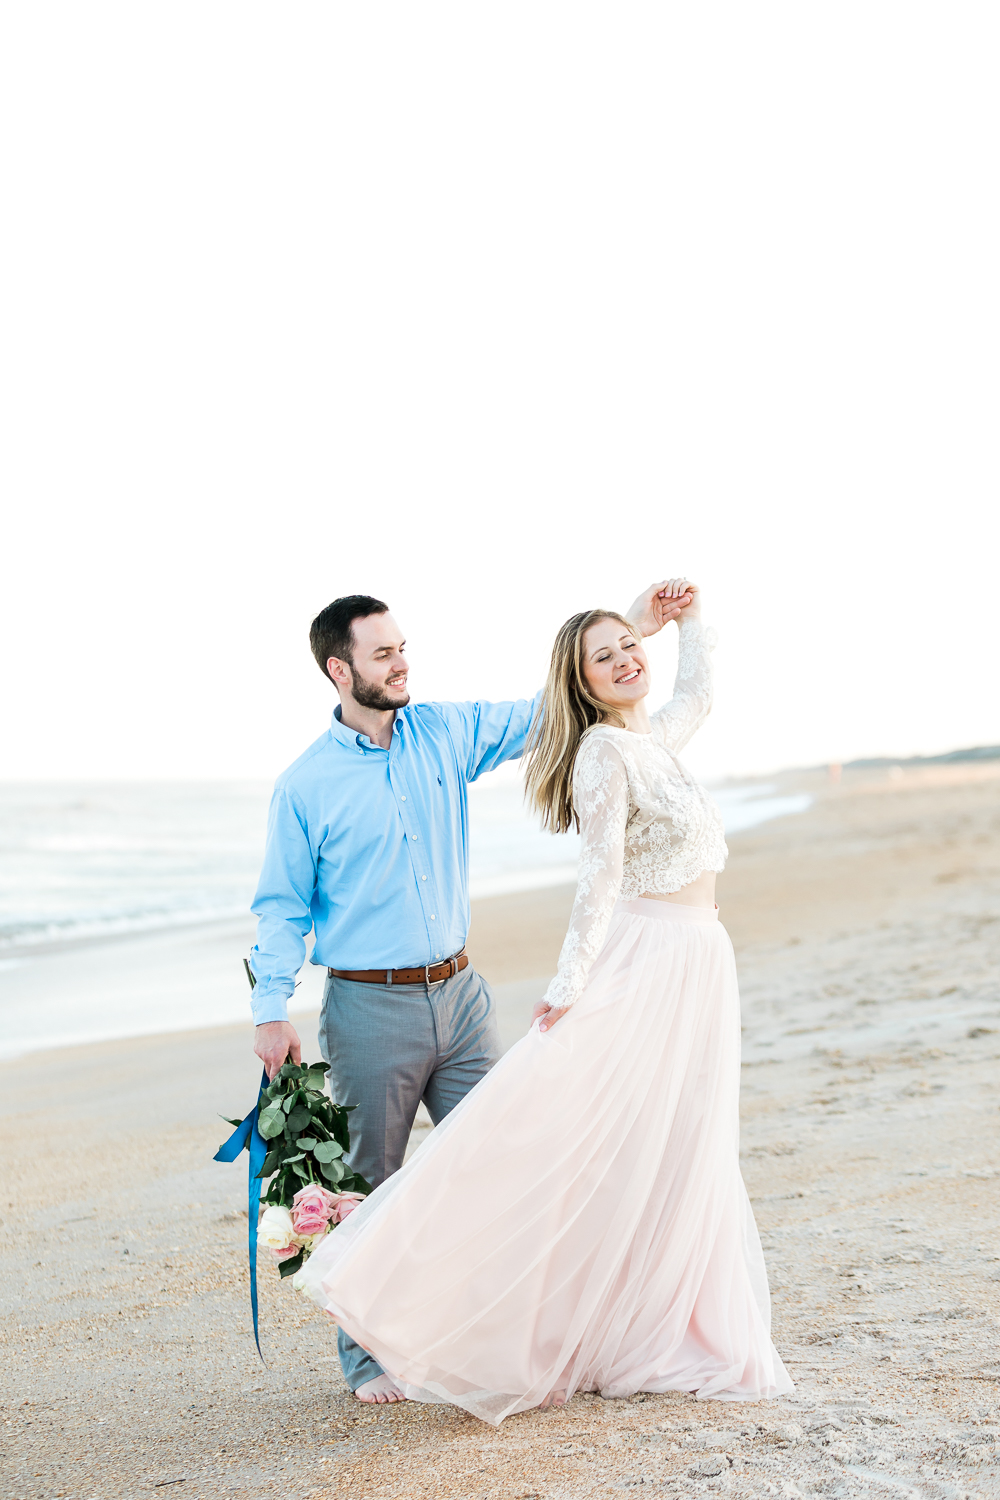 engagement photographer in ponte vedra beach + outfit ideas for couple sessions